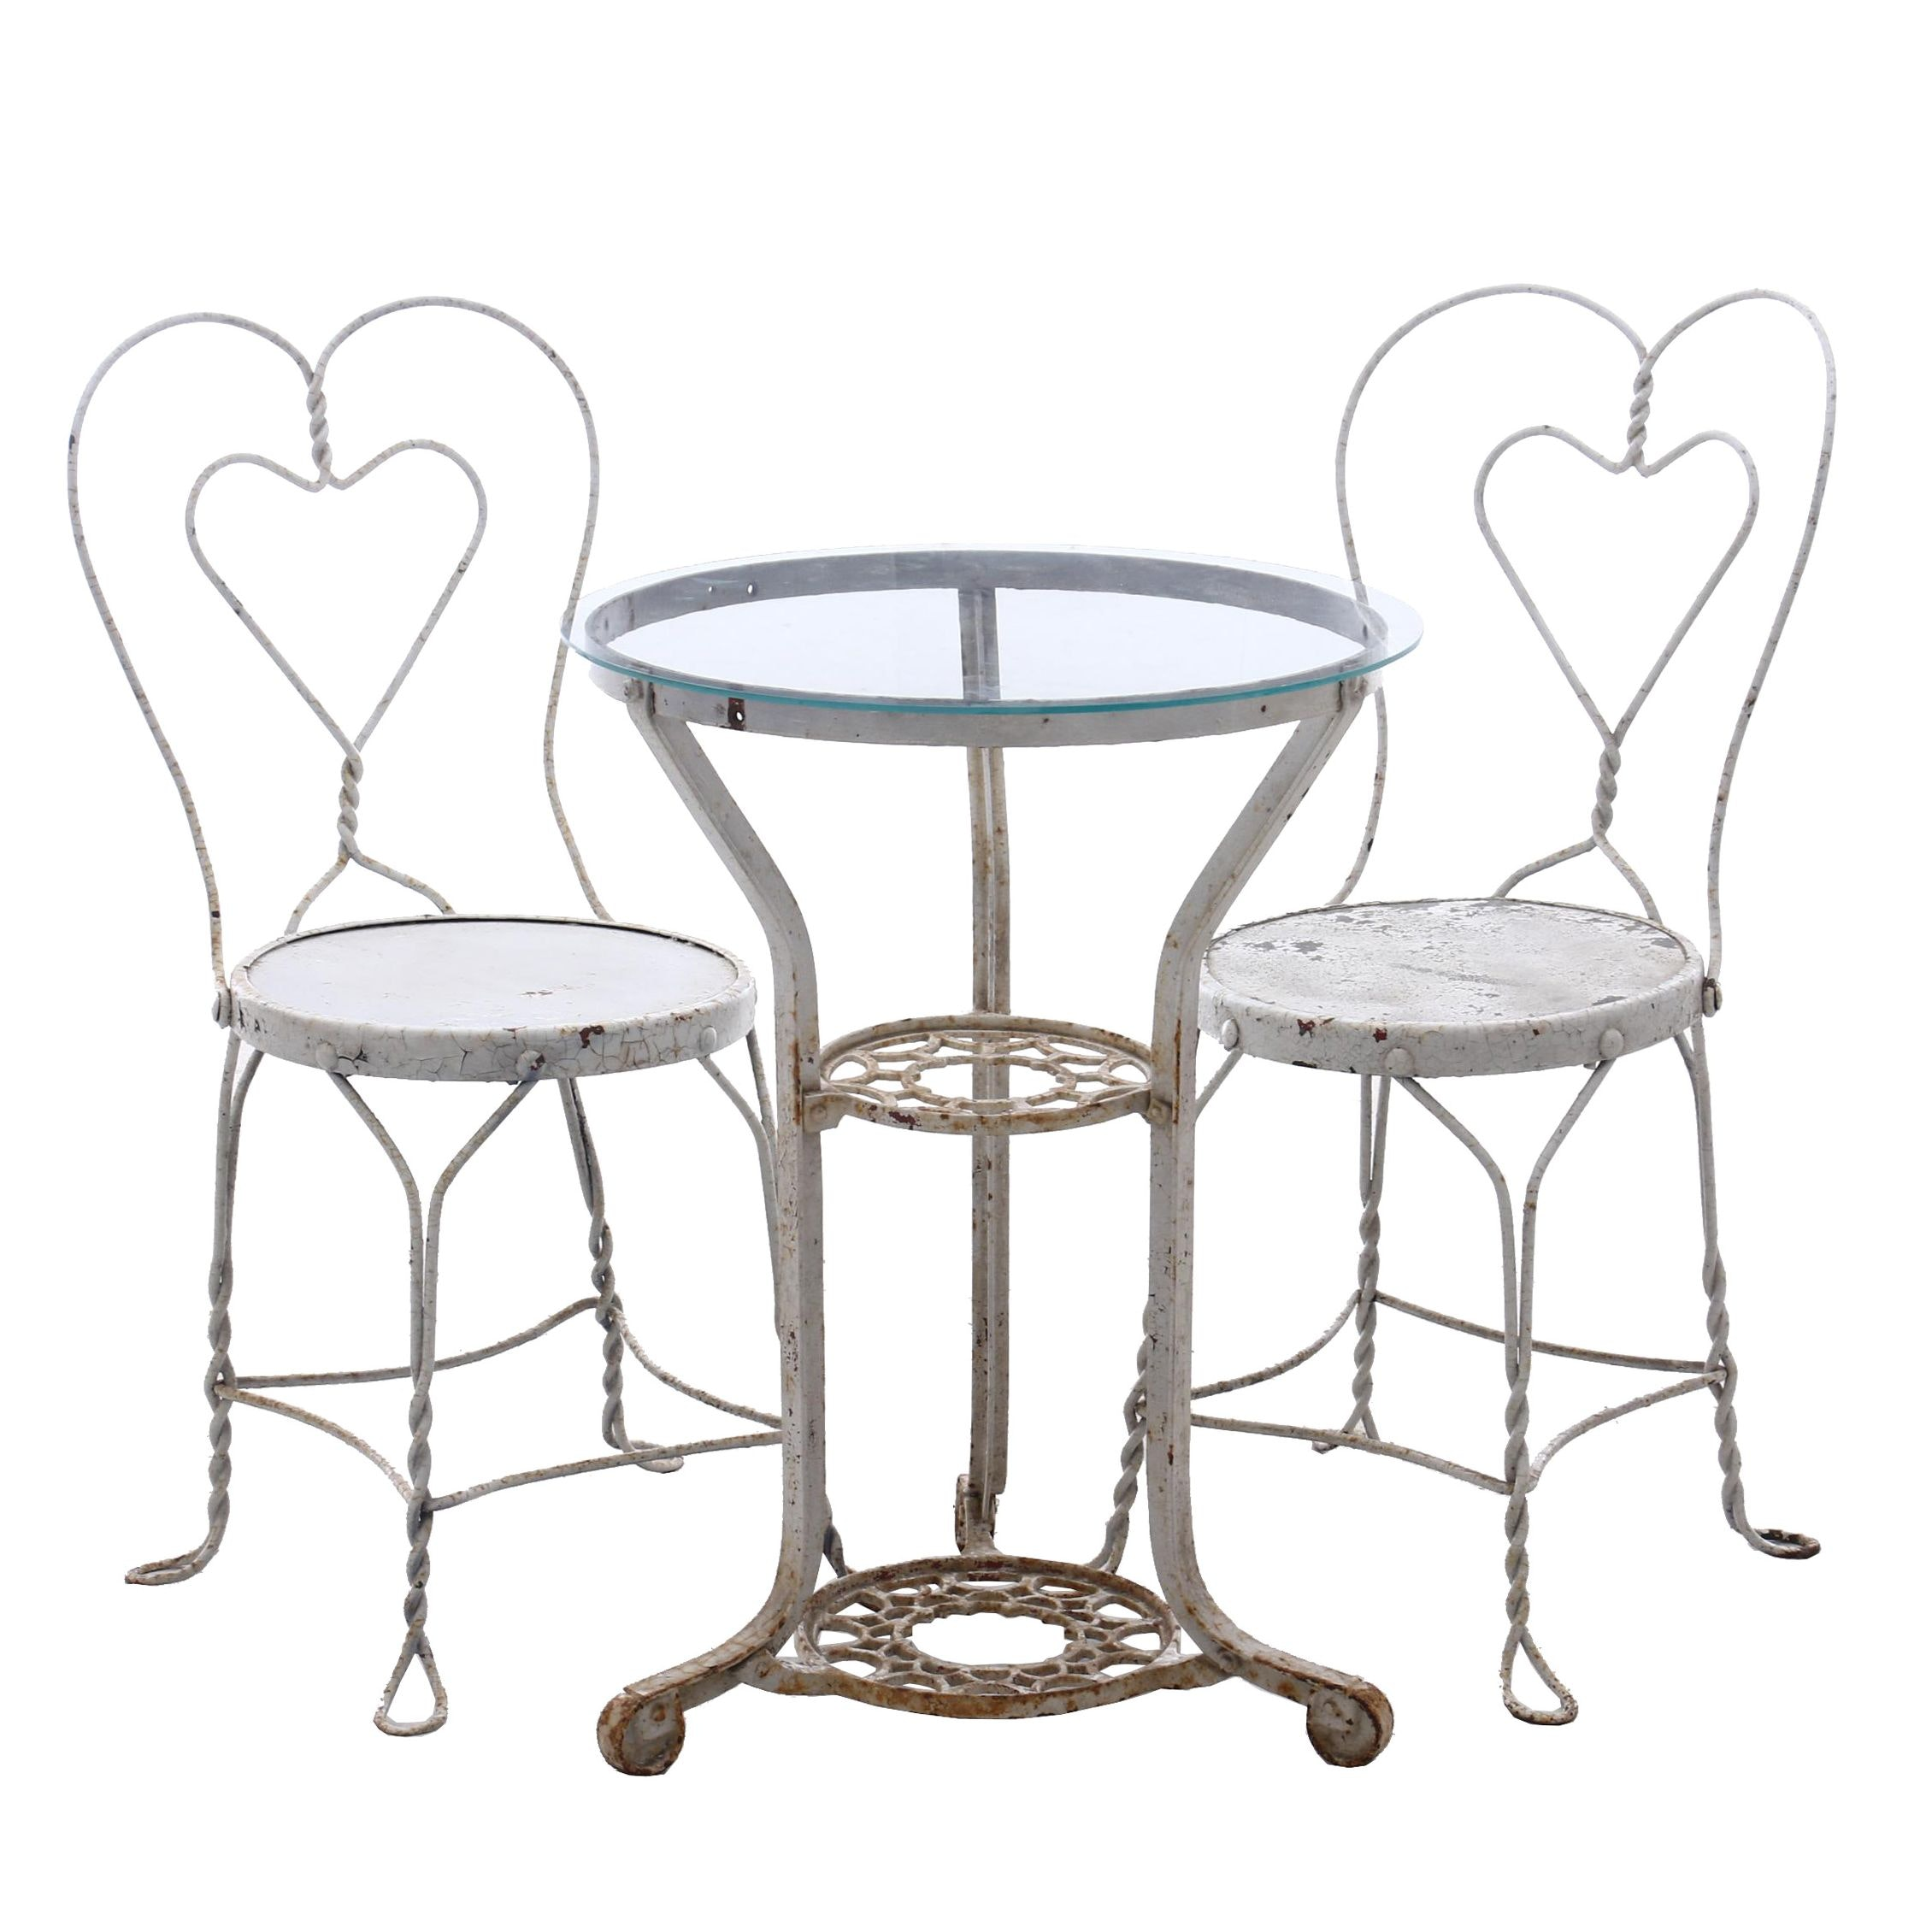 Wrought Iron Glass Top Patio Table with Bistro Chairs in White